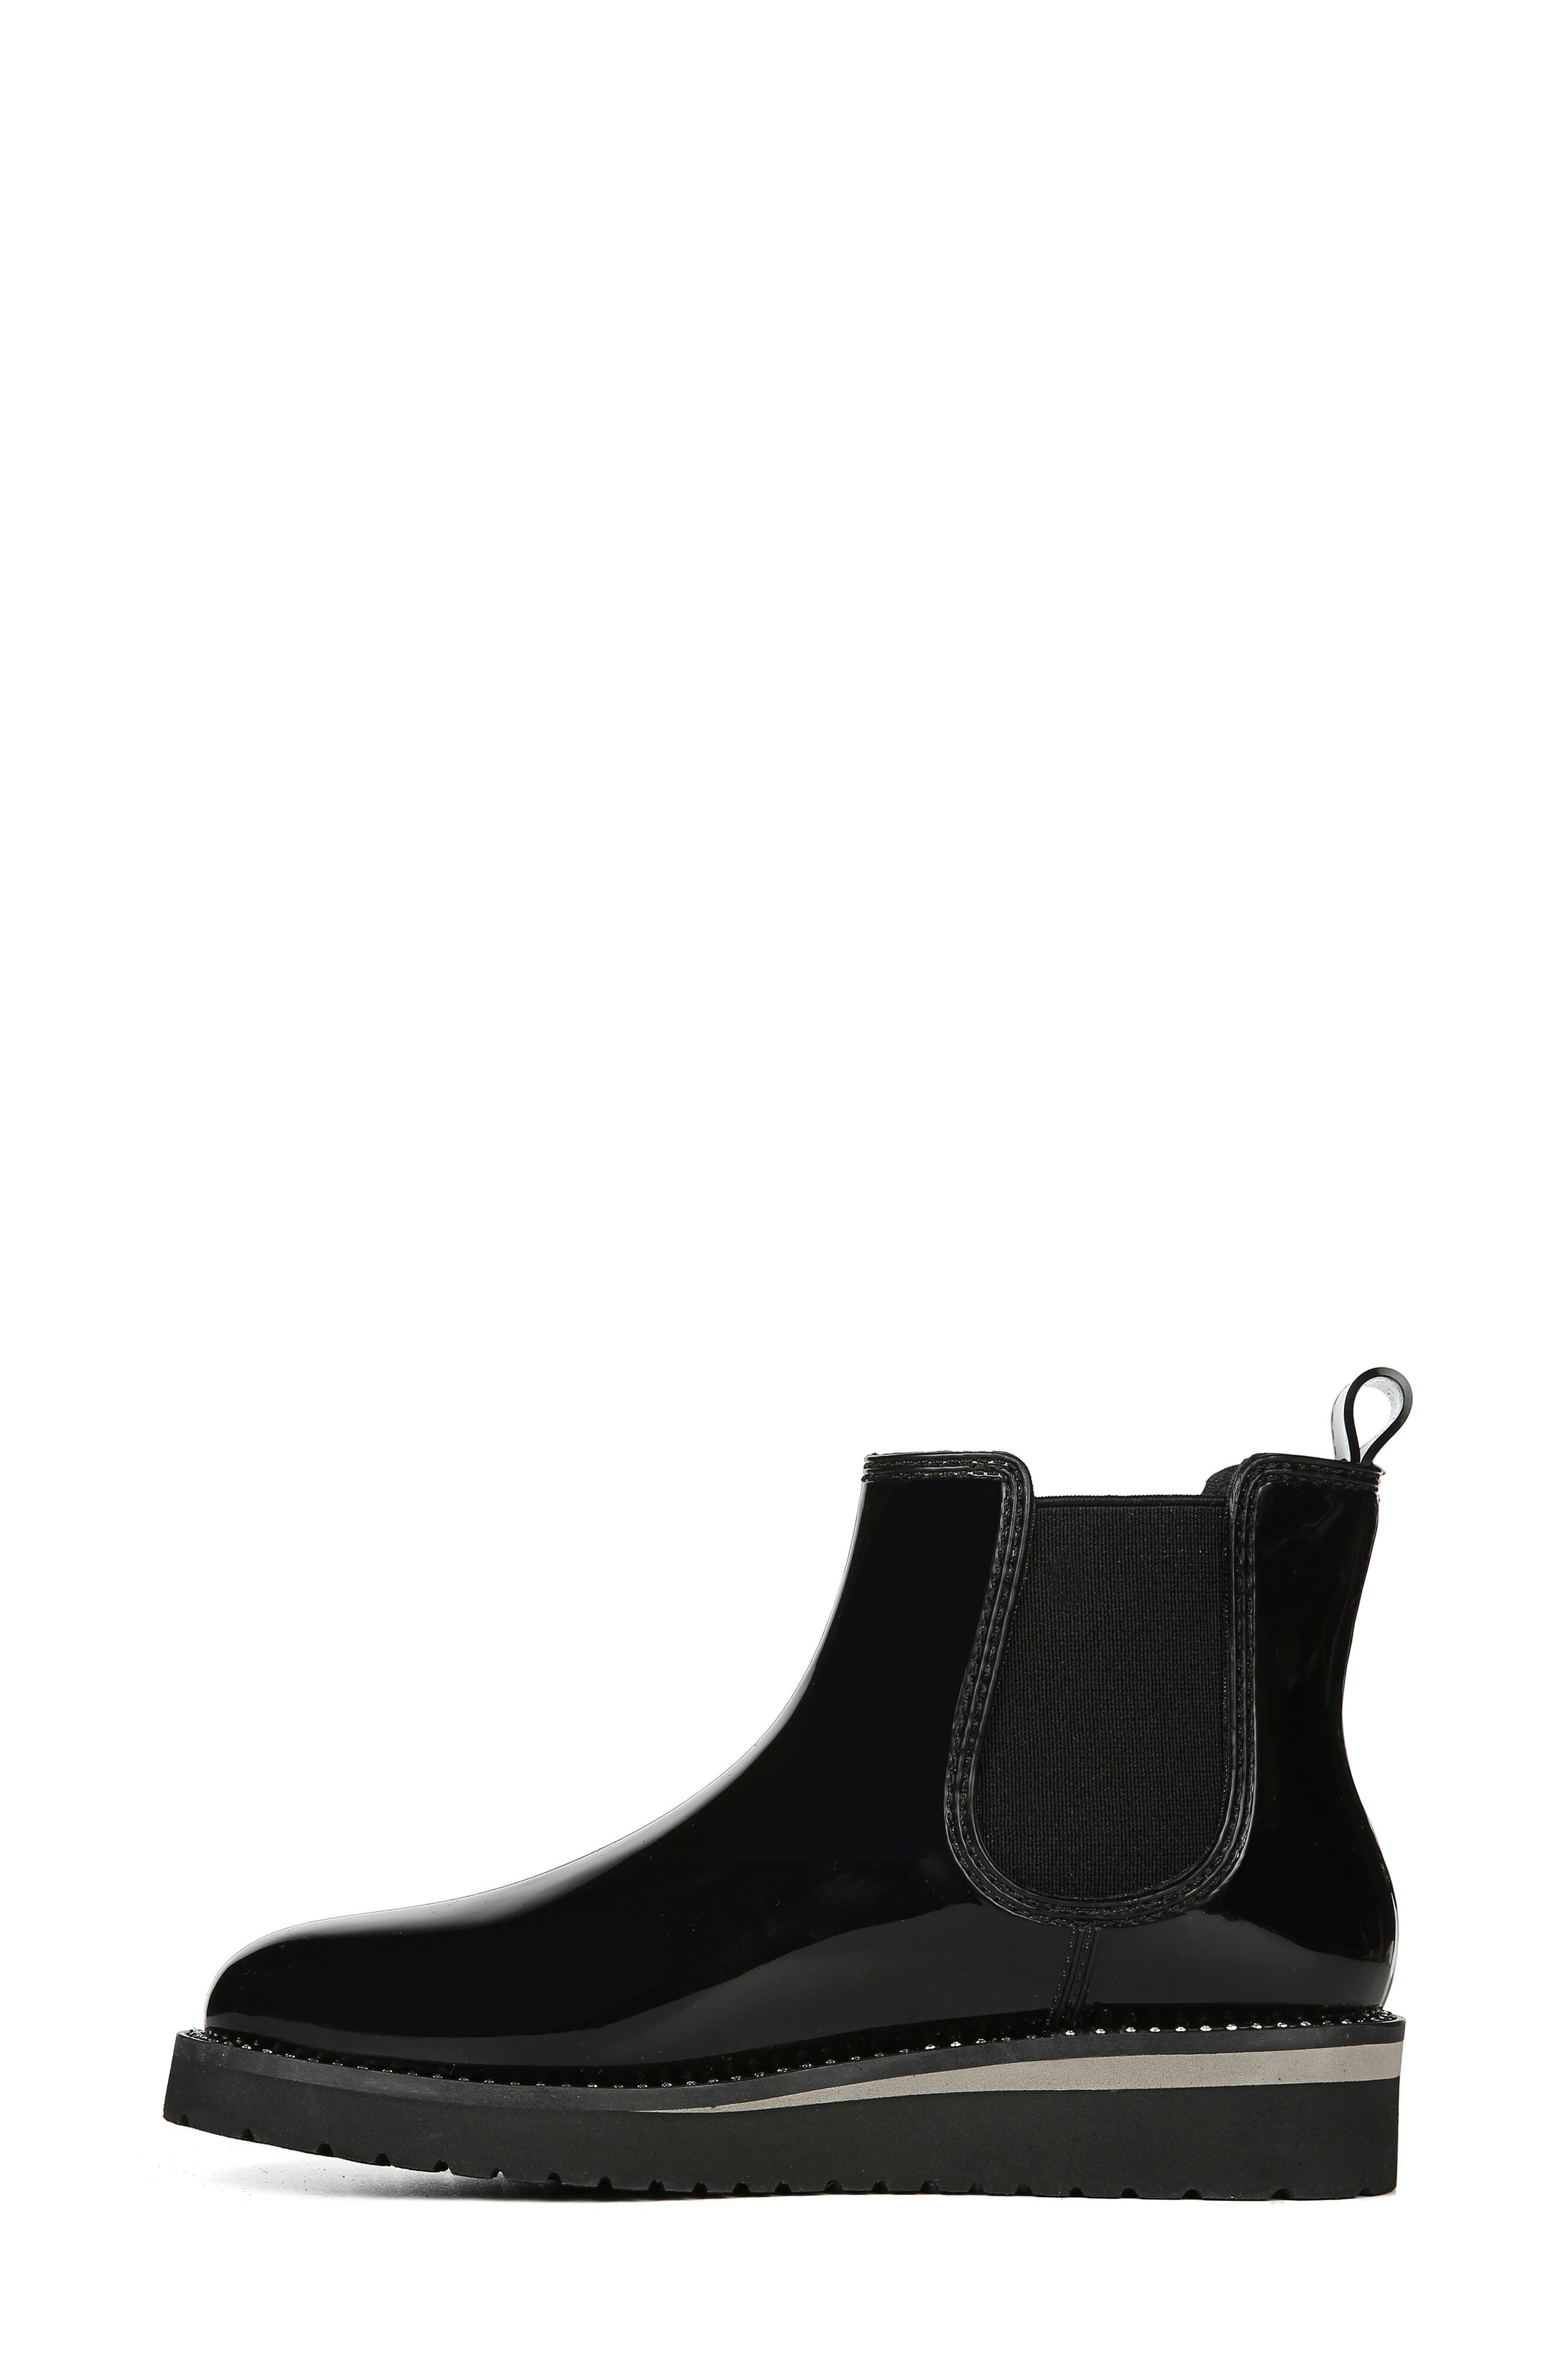 Luna Waterproof Chelsea Boot,                             Alternate thumbnail 7, color,                             BLACK